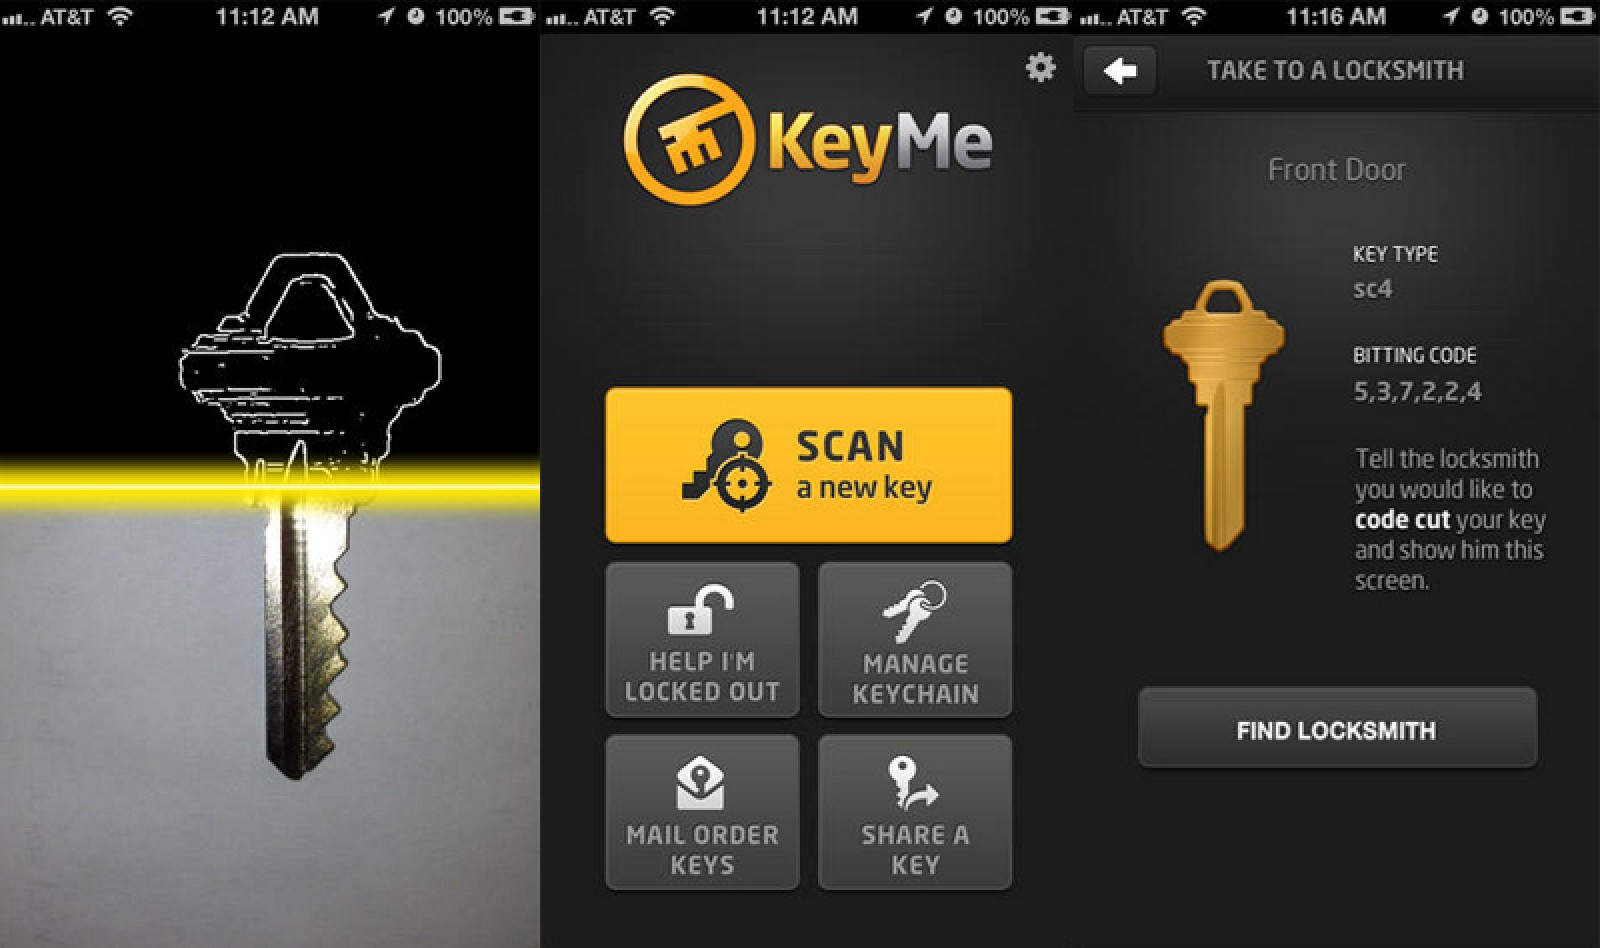 House Key Scanning Service 'KeyMe' Launches for iOS to Help